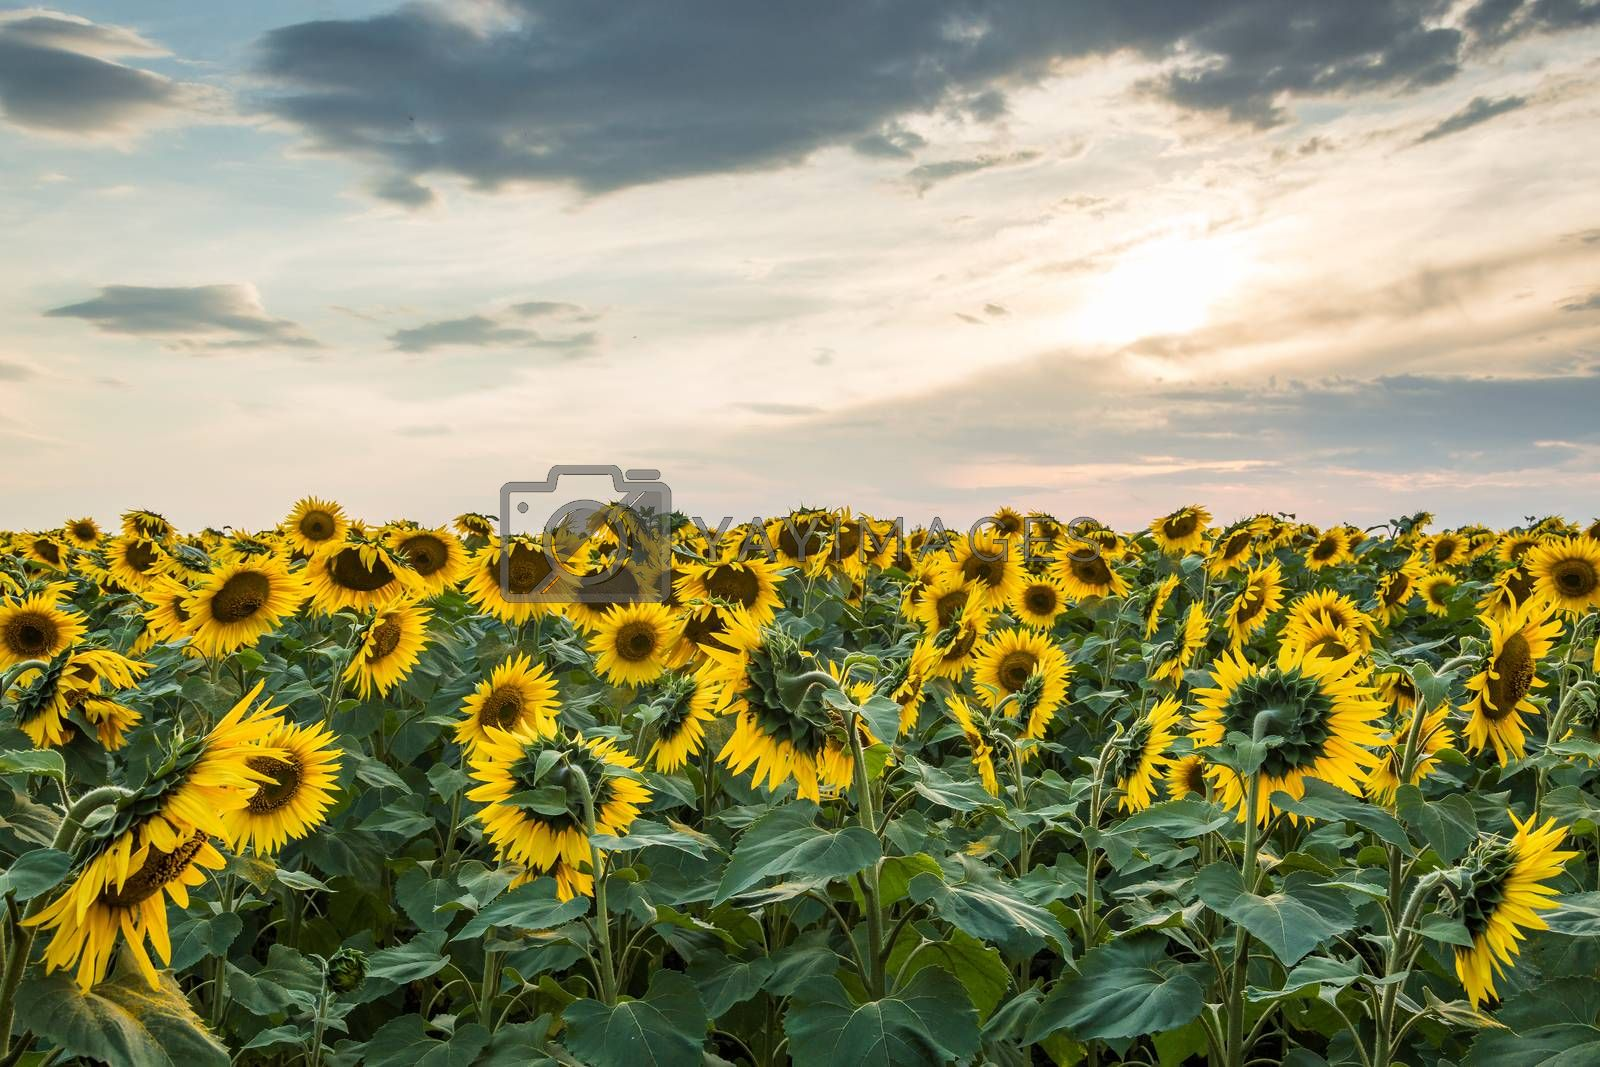 Royalty free image of Sunflower field by firewings